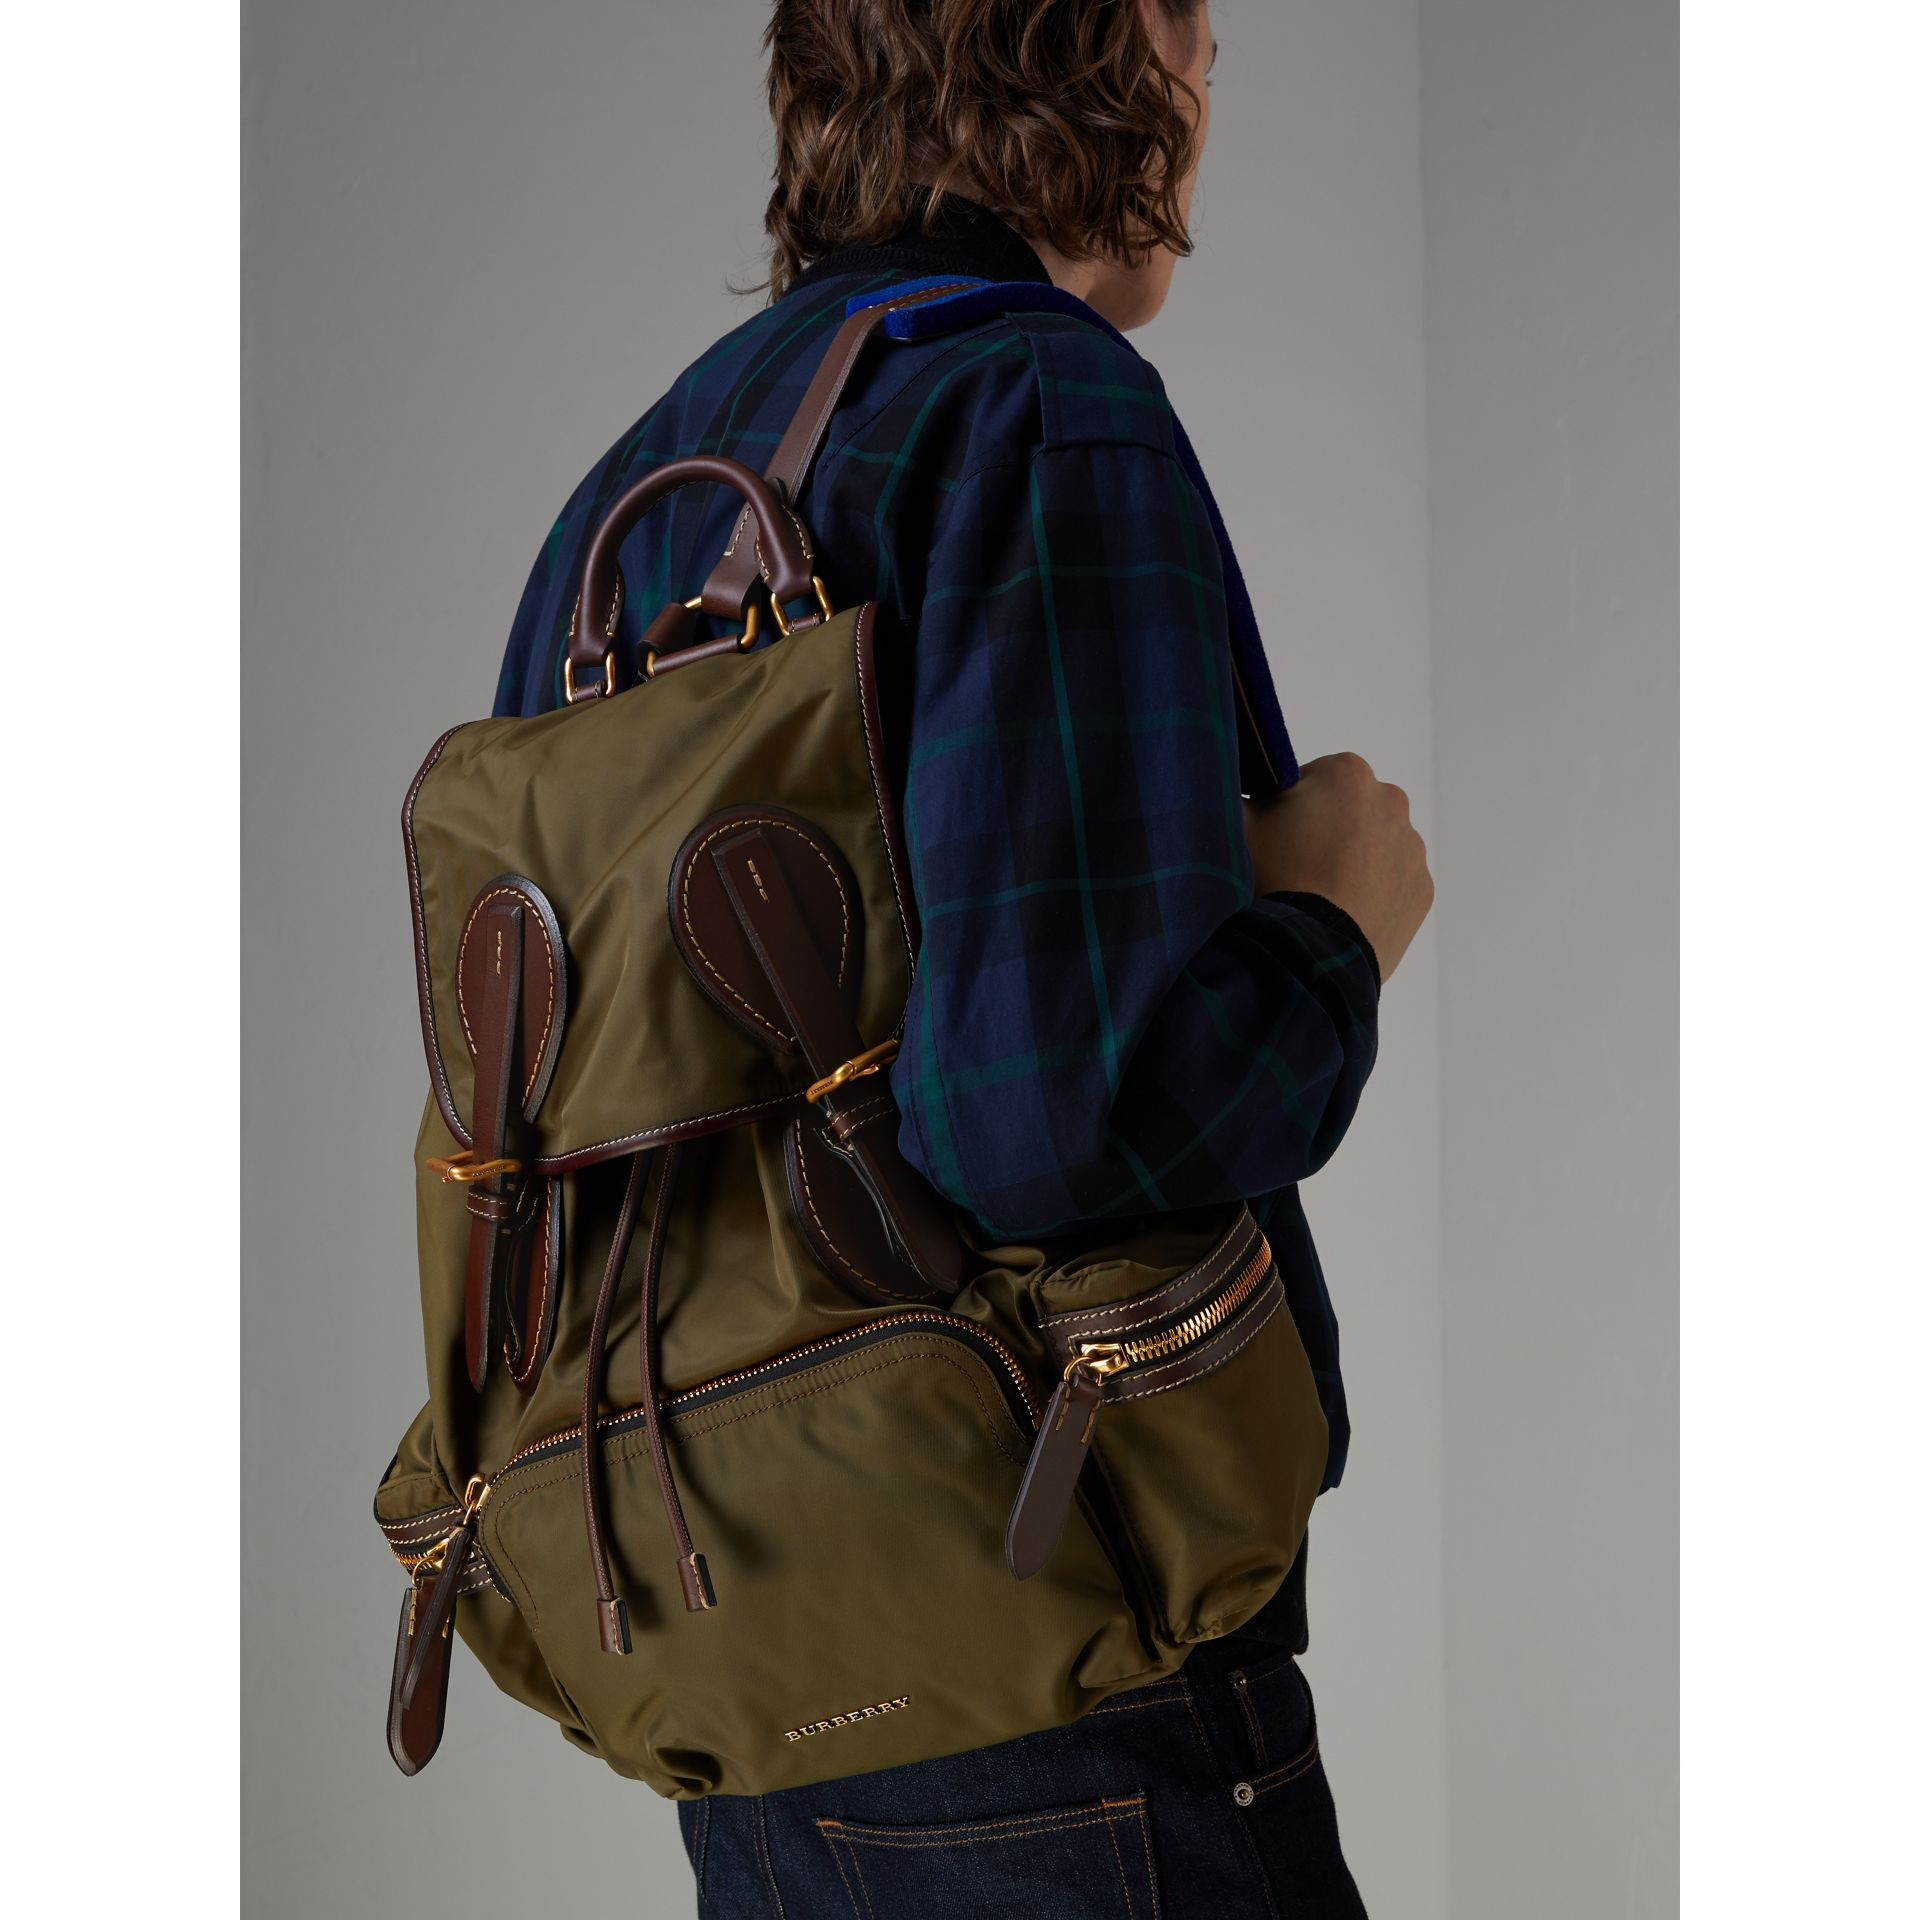 bda5f9830c2 Burberry - The Large Rucksack in Technical Nylon and Topstitched Leather - 8